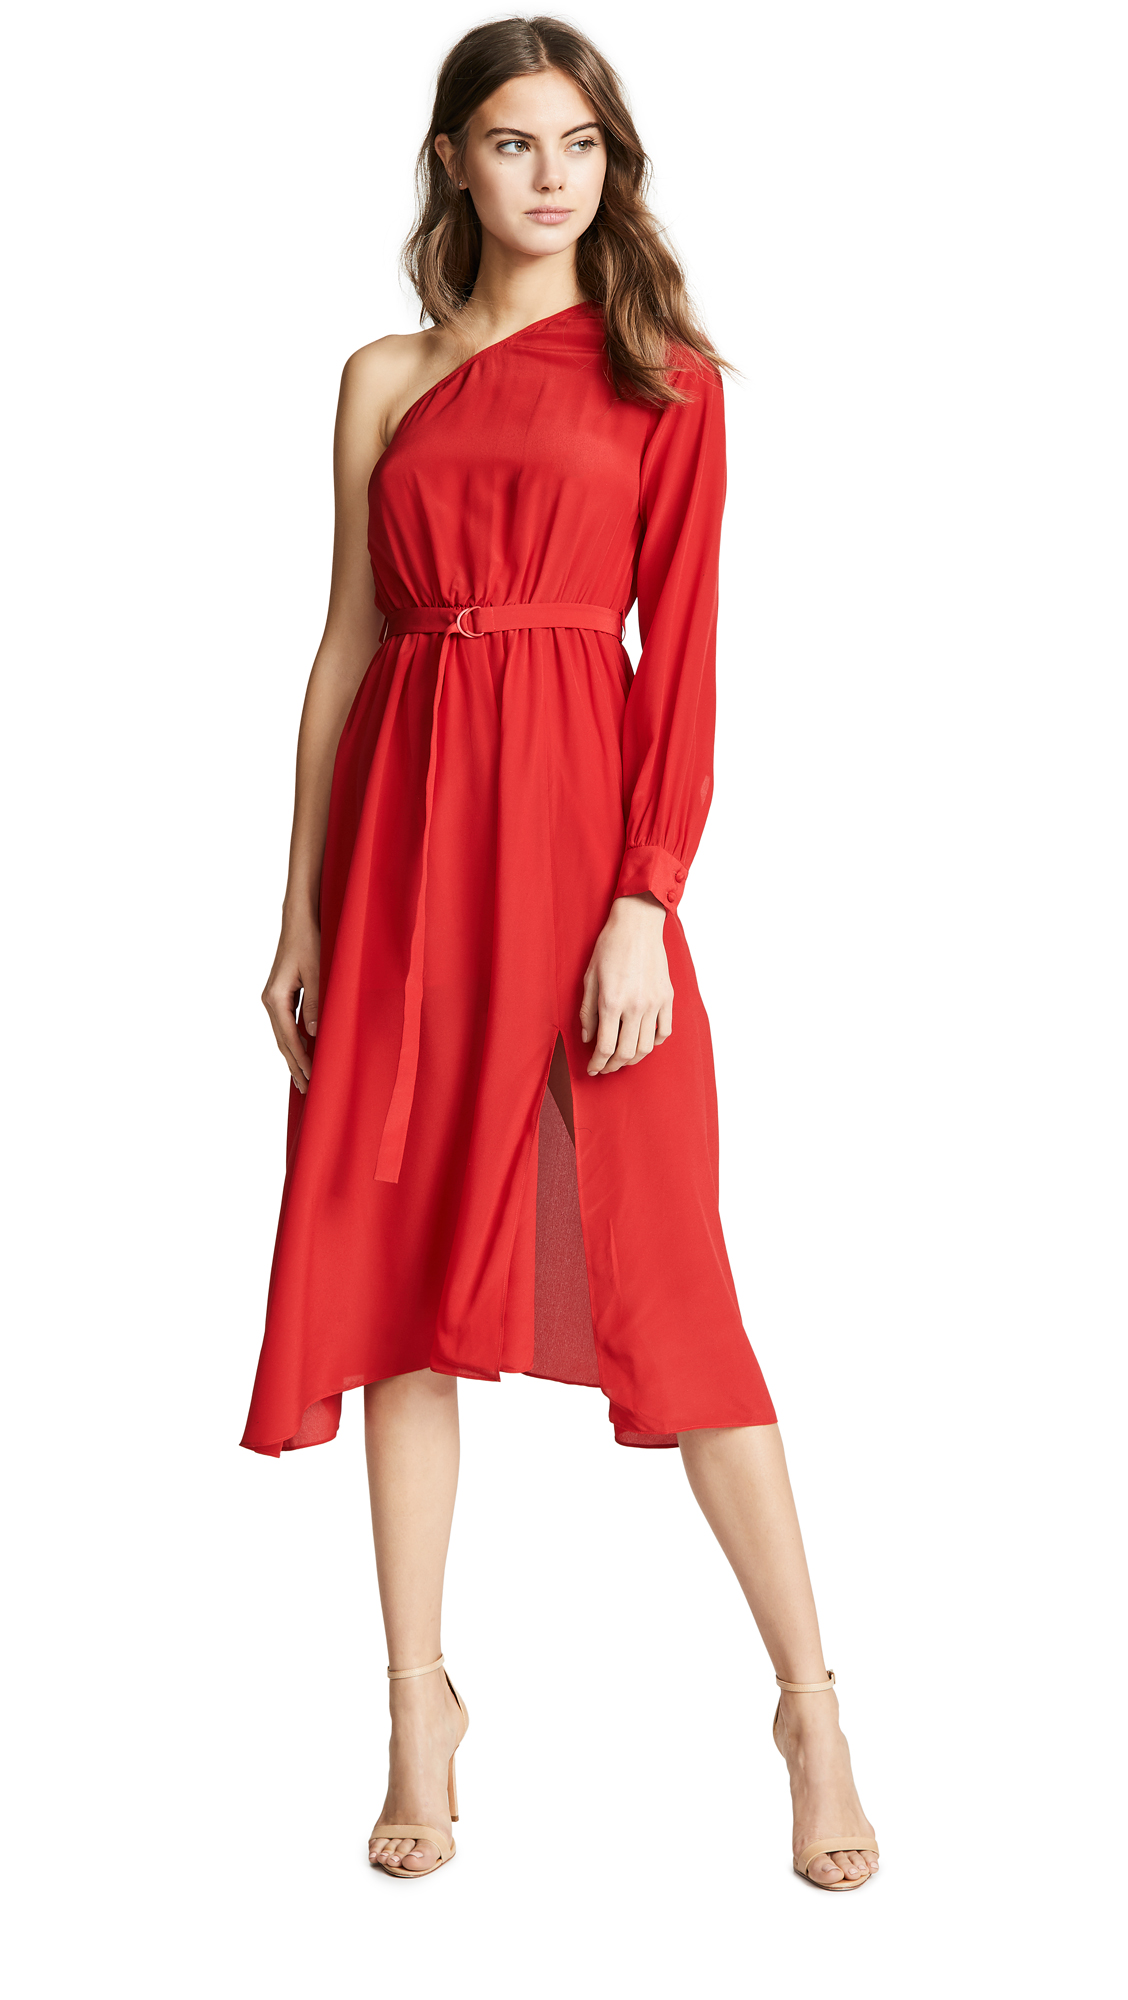 EDITION10 One Shoulder Dress in Tomato